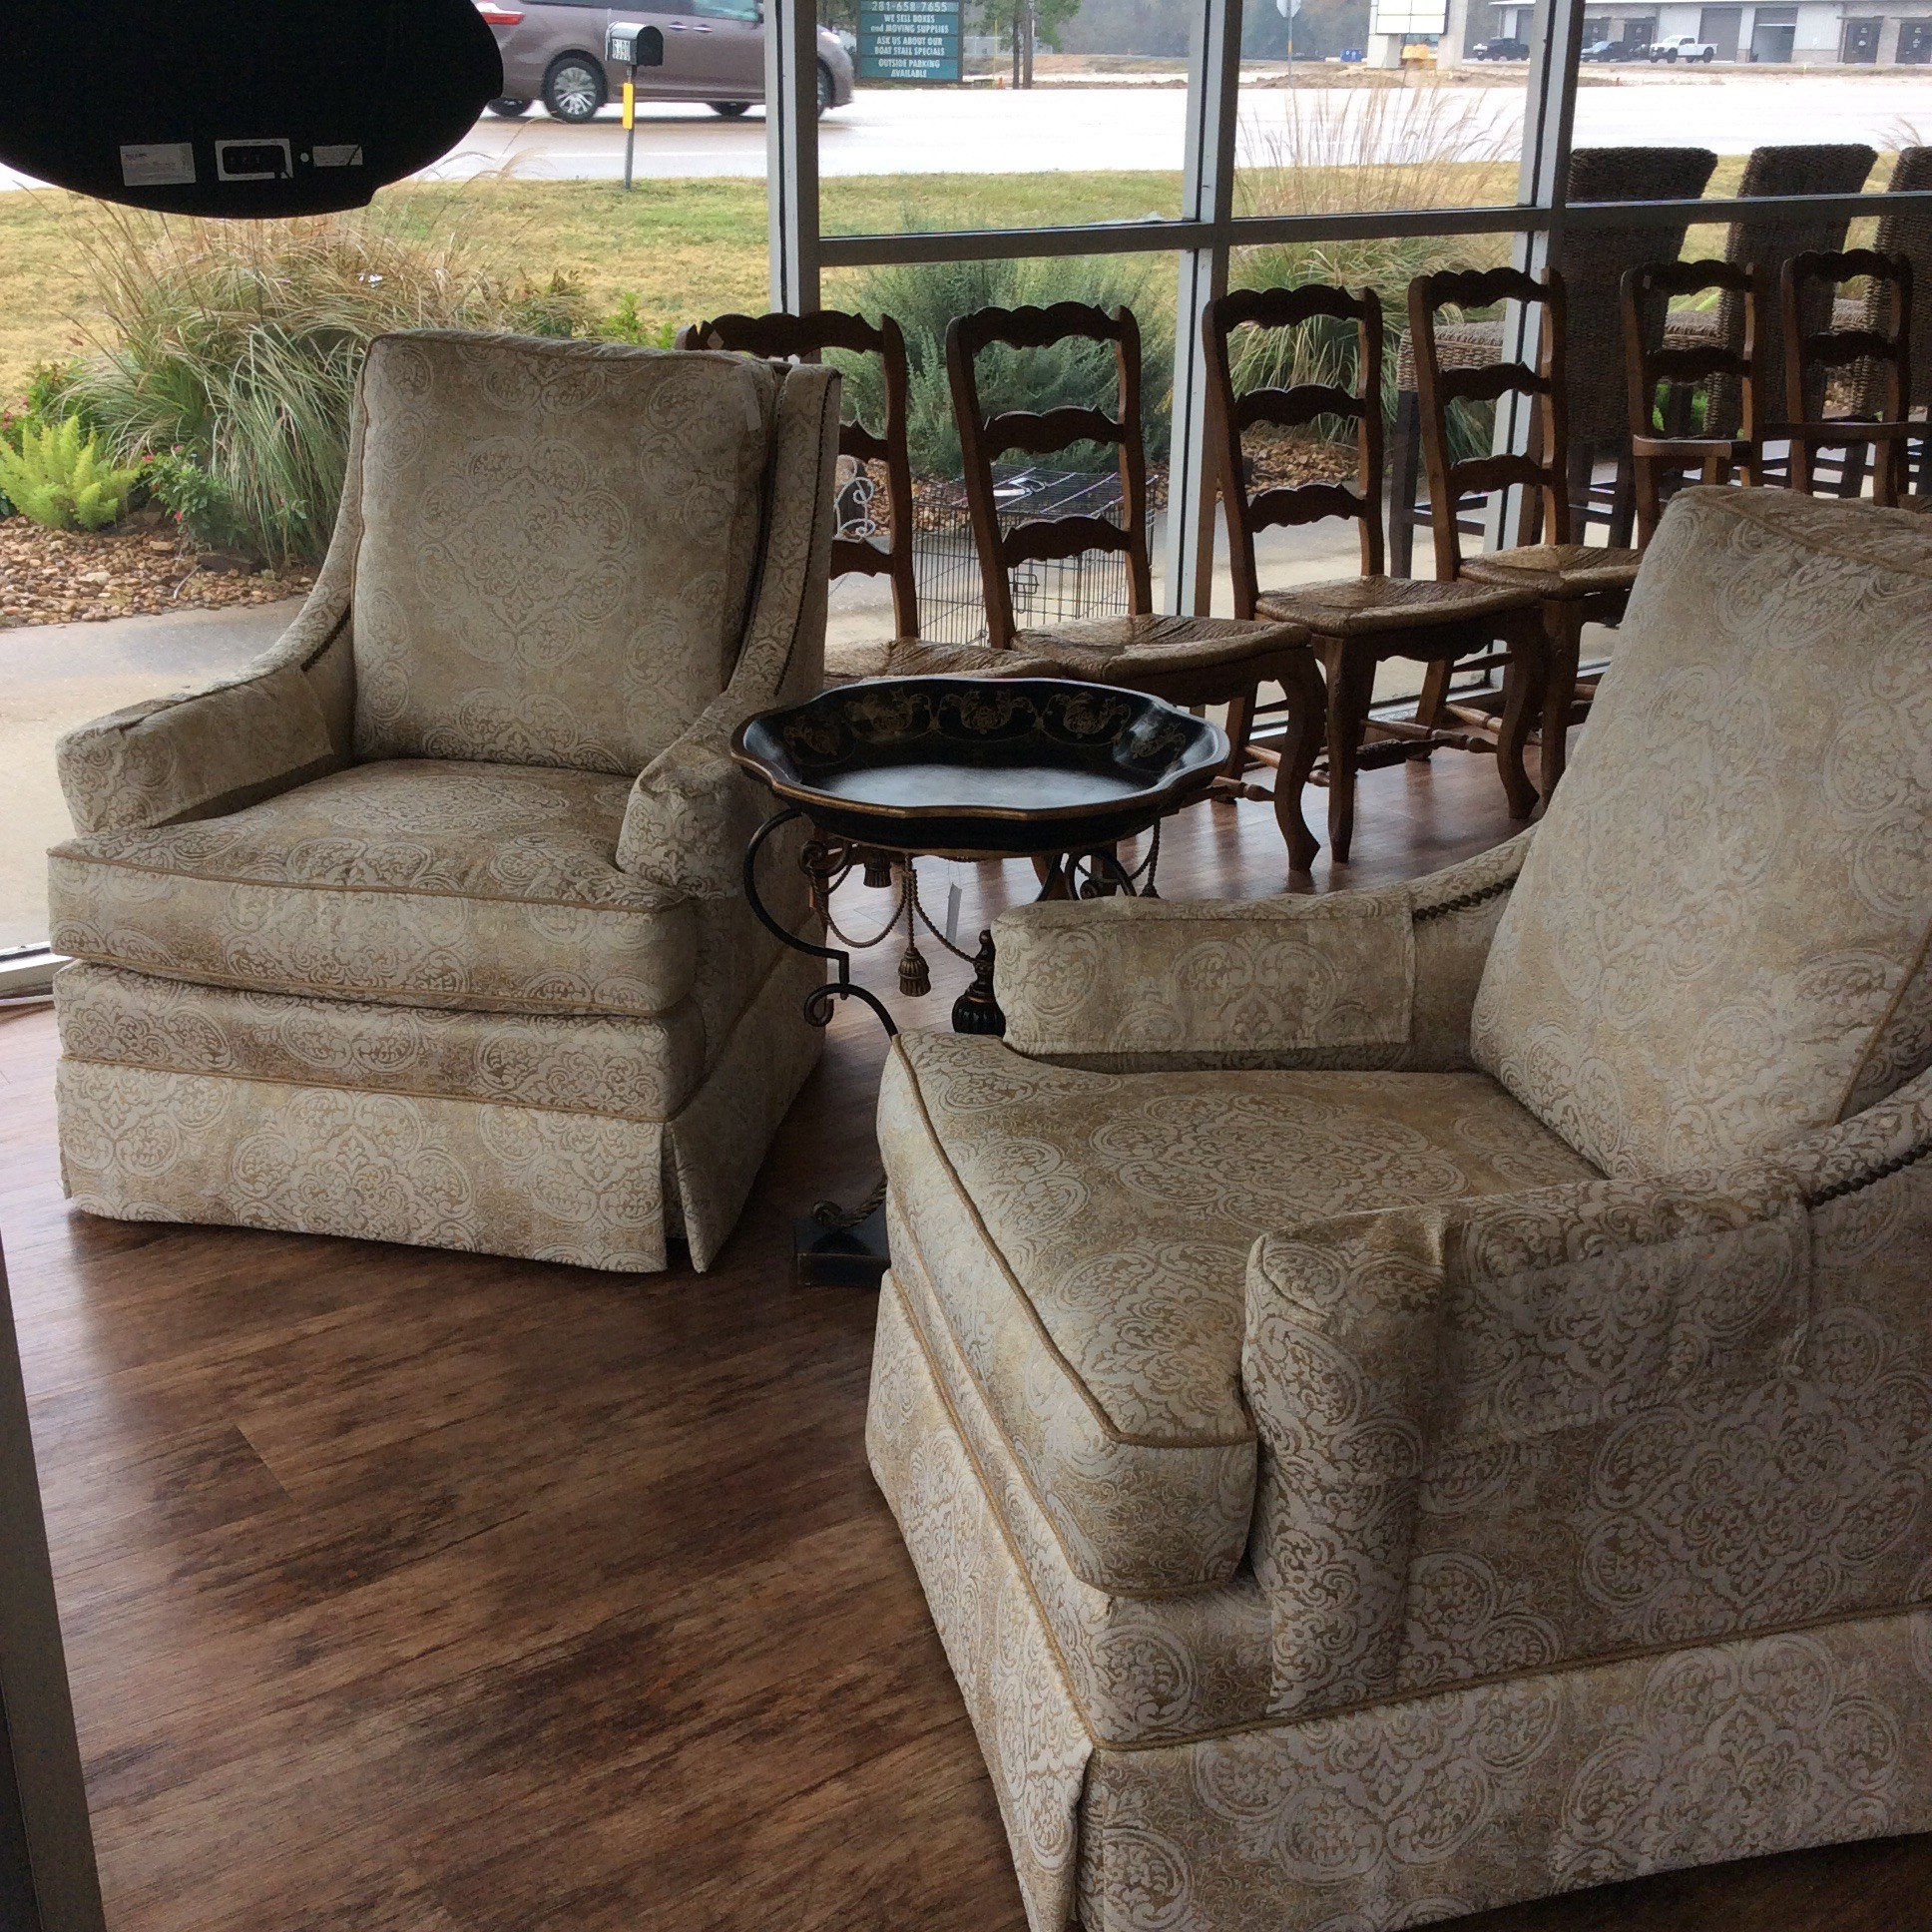 This pair of upholstered chairs by Sherrill Furniture are in great condition! Upholstered in a gold, silver and cream brocade with a nailhead trim. Back cushions are attached. Classy and elegant!